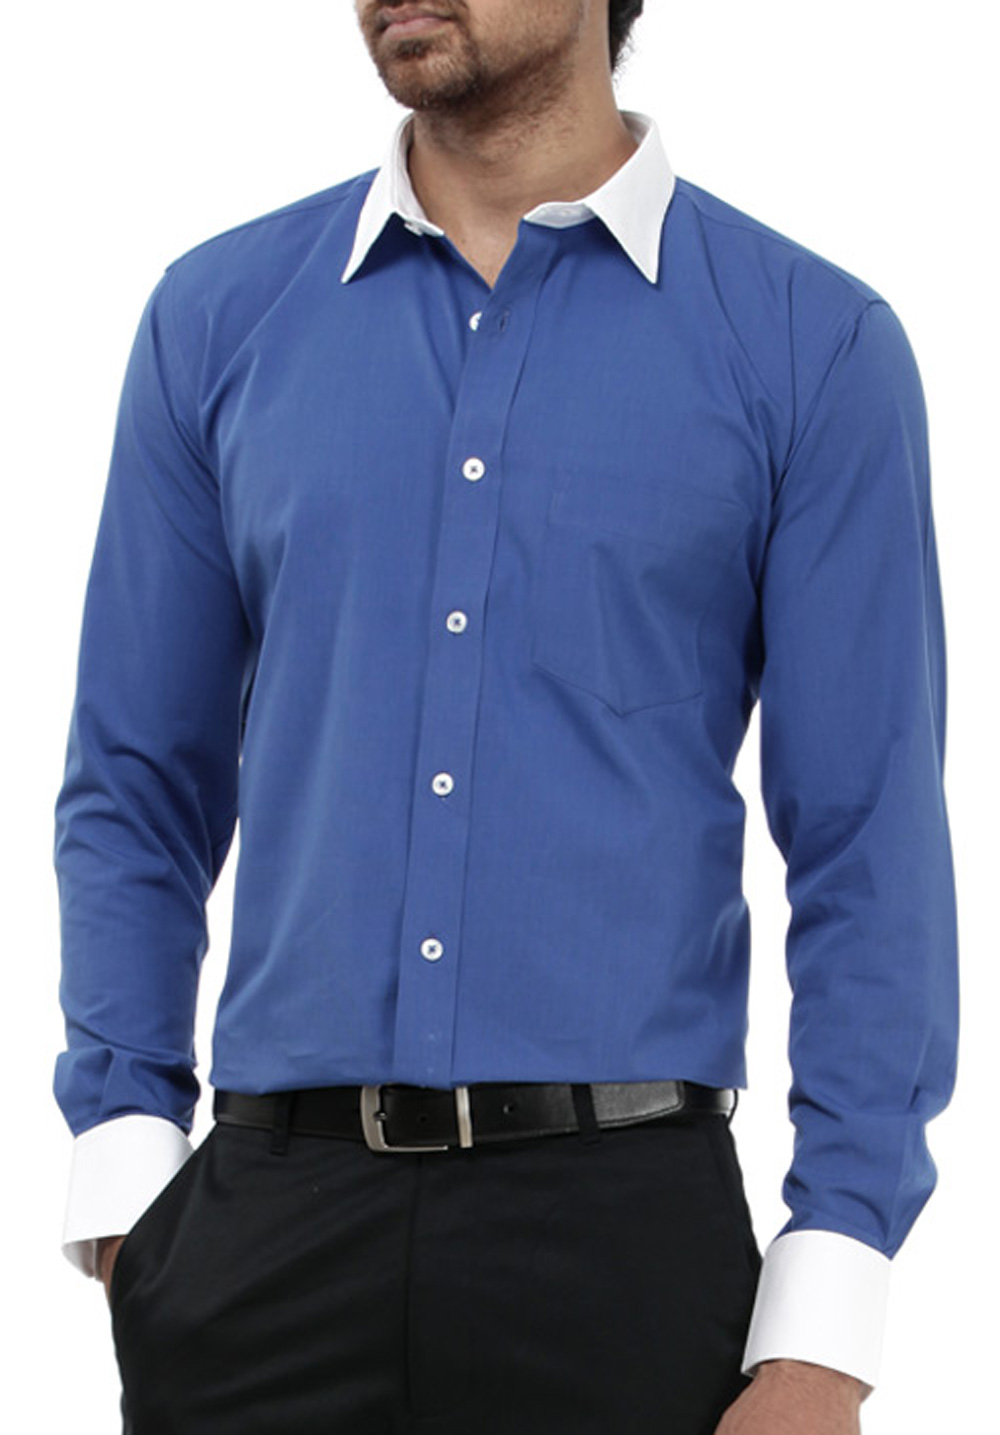 Mens High Quality Solid Colour Shirt With Contrast Cuff And Collar